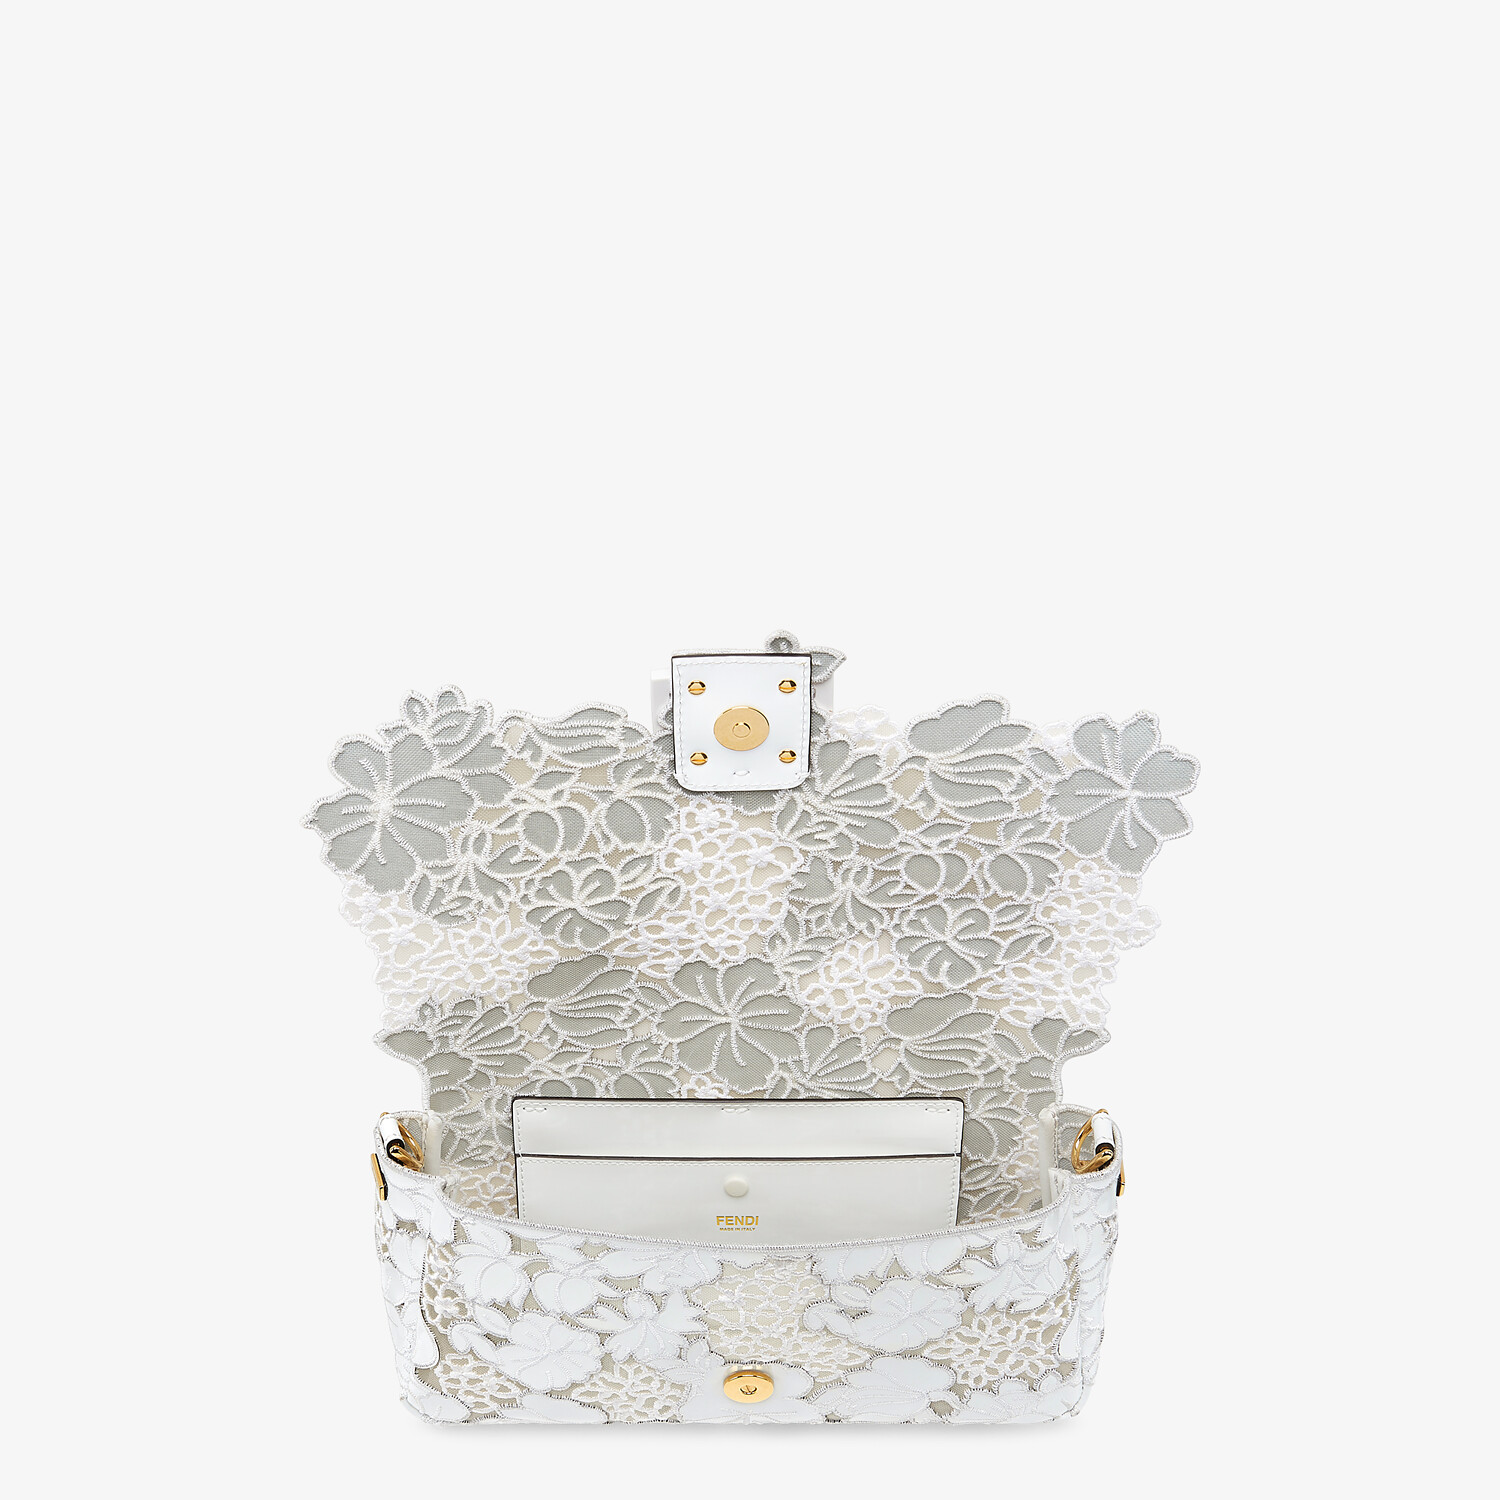 FENDI BAGUETTE - Embroidered white patent leather bag - view 5 detail